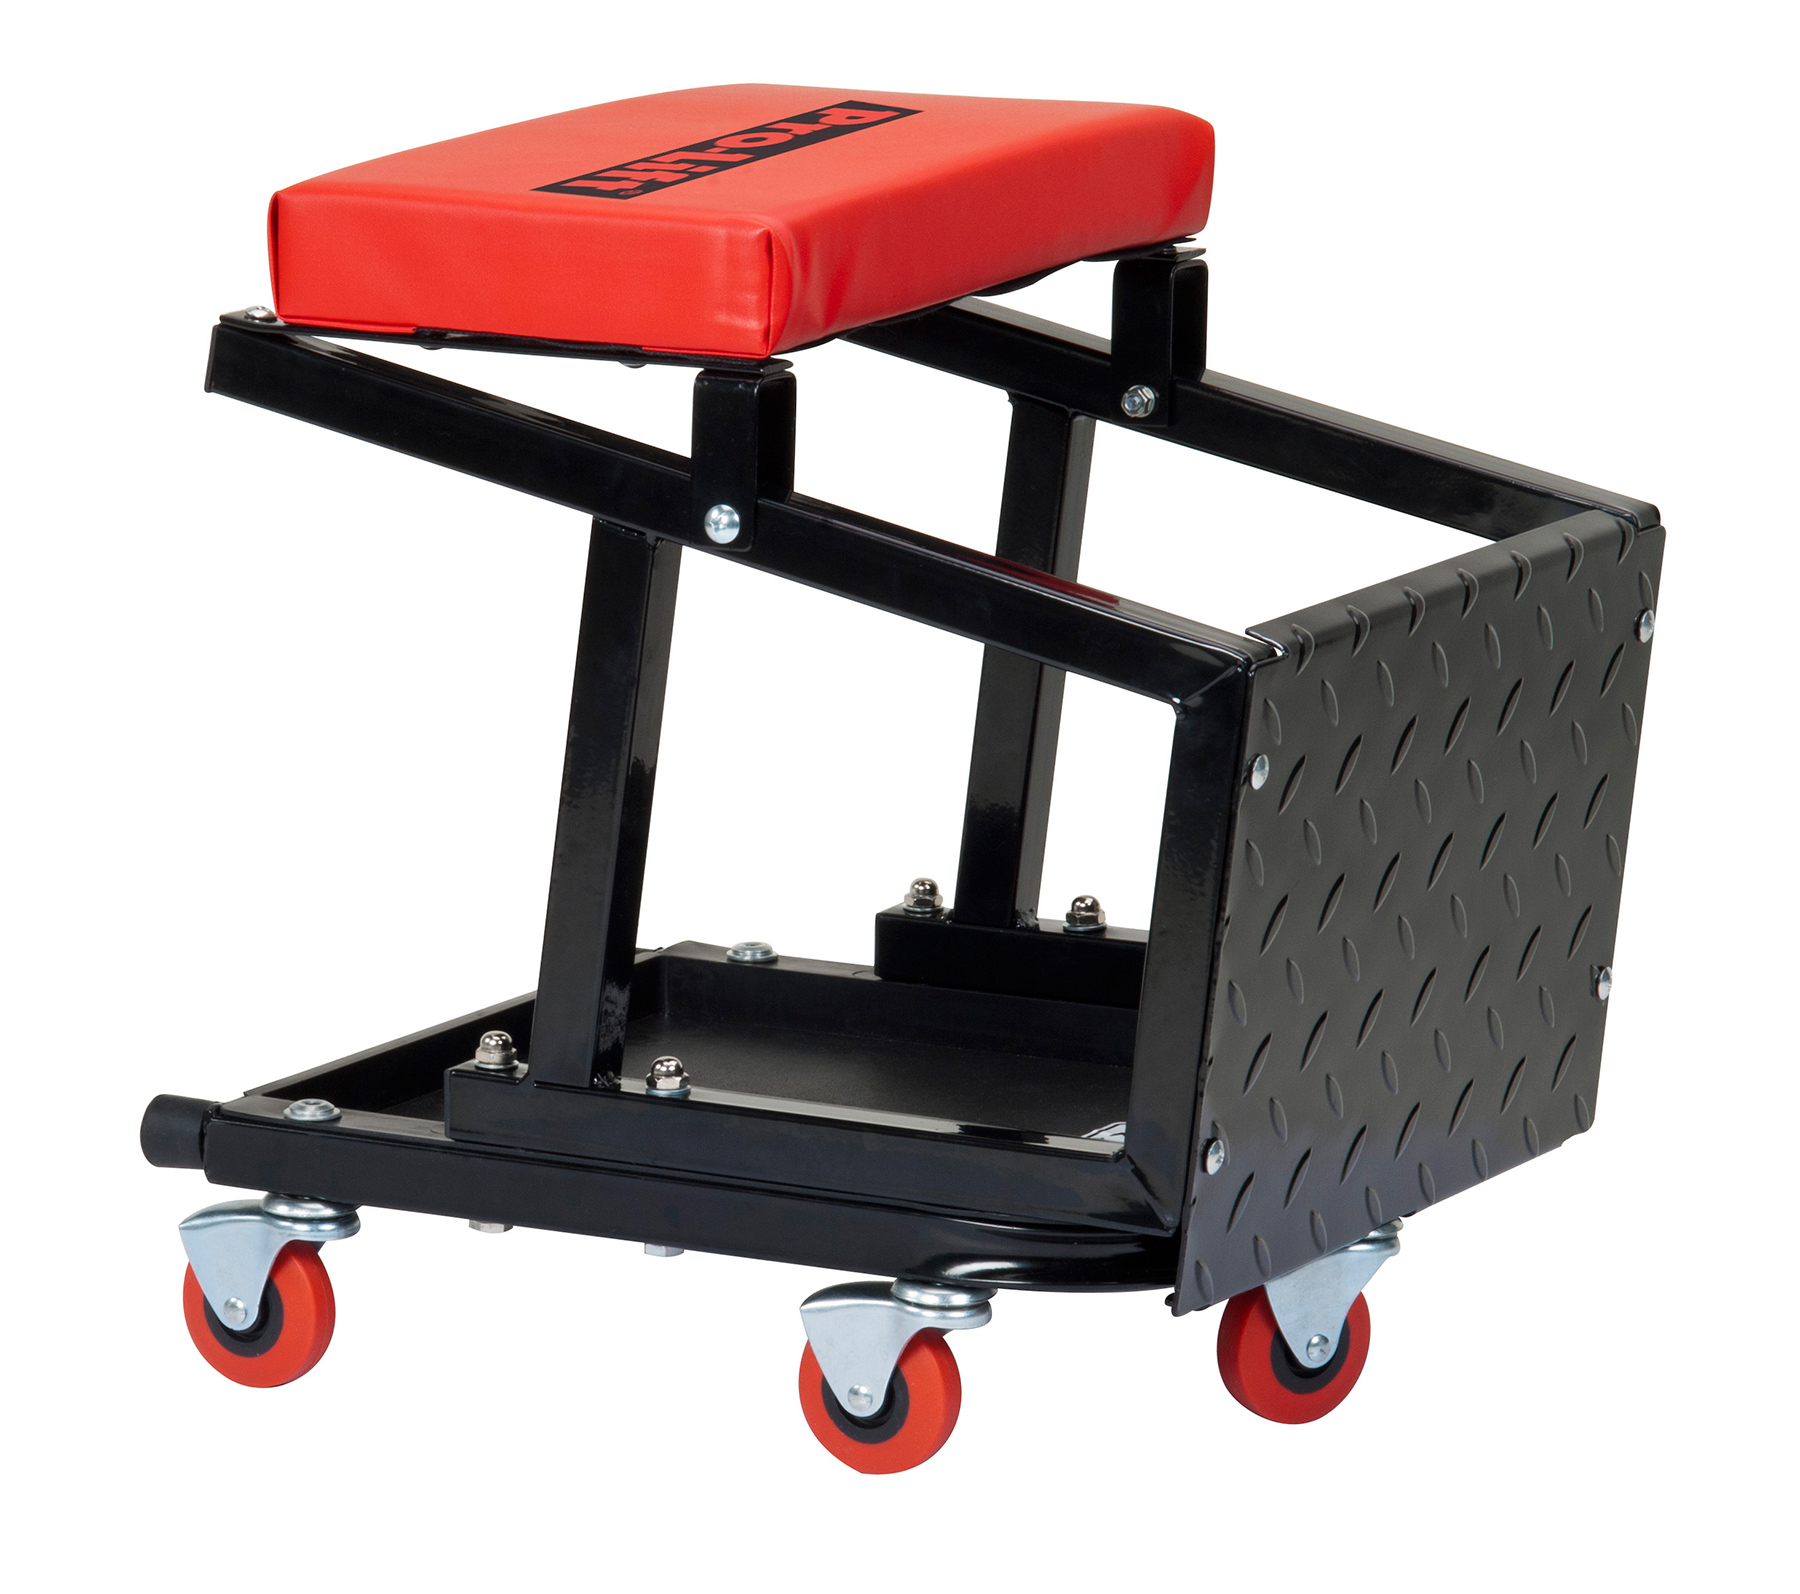 chair stool combo wedding chairs for rent pro lift creeper seat and 300 lbs capacity